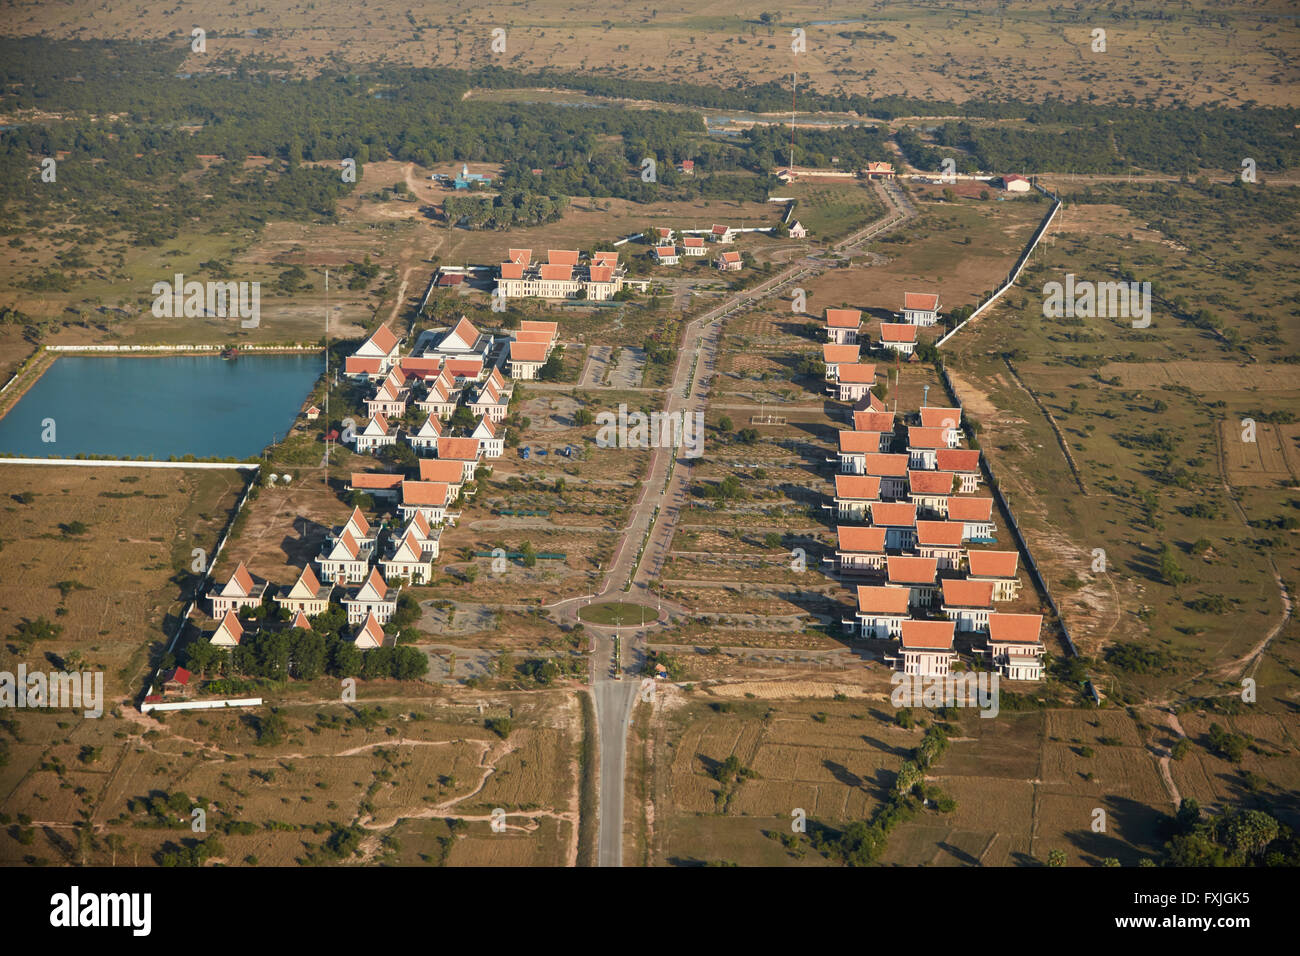 APSARA Authority offices (in charge of looking after Angkor Archaeological Park), near Siem Reap, Cambodia - aerial - Stock Image